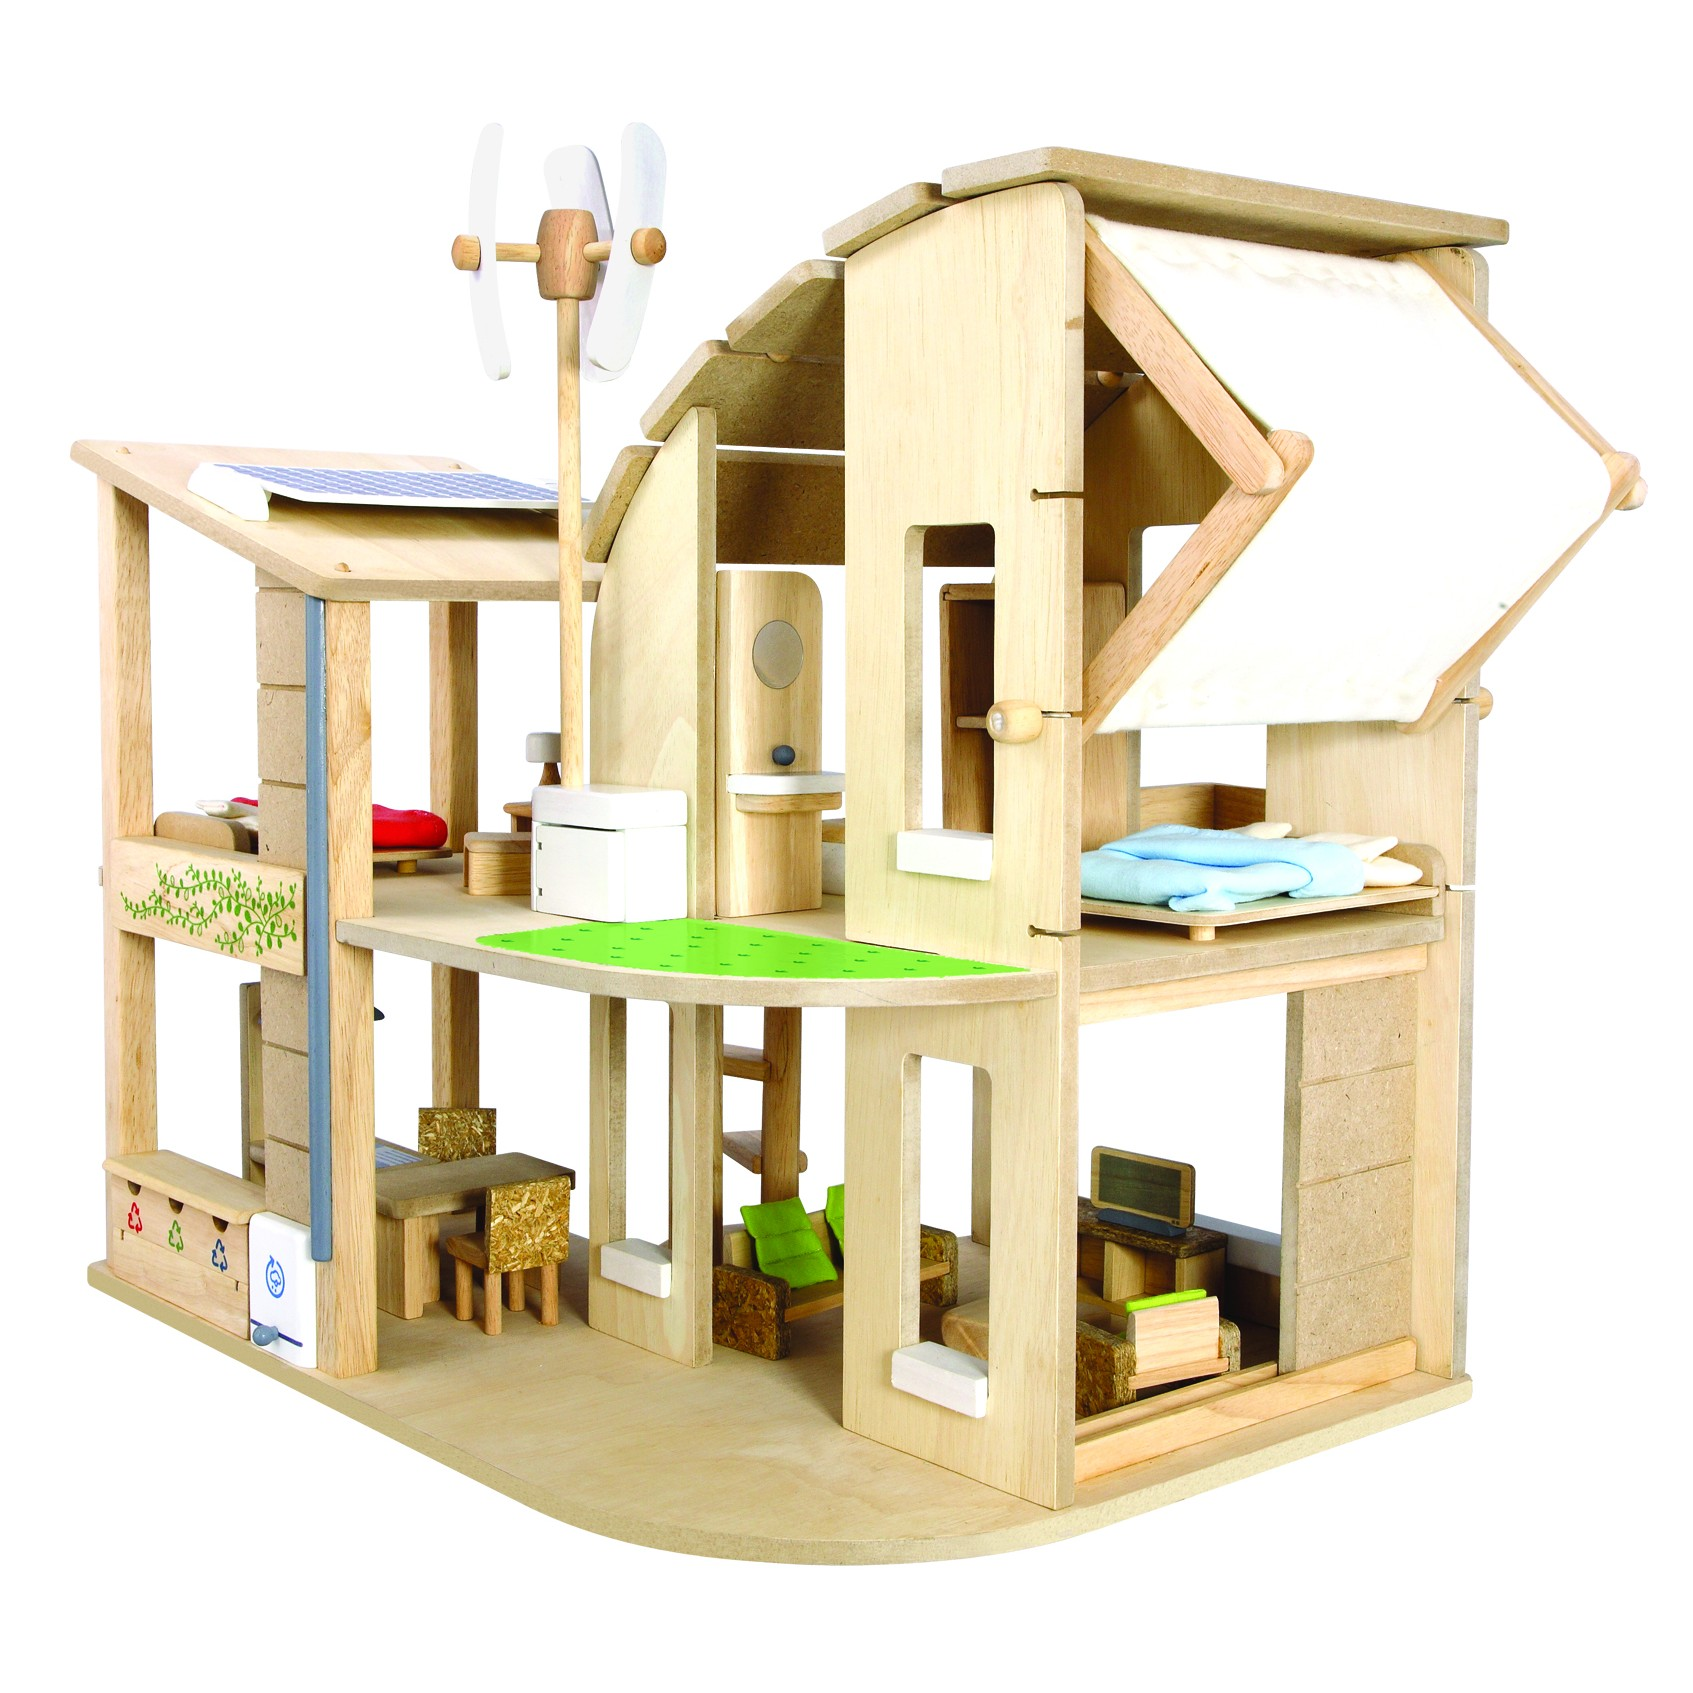 Plan toys green dolls 39 house with furniture - Maison playmobil en bois ...